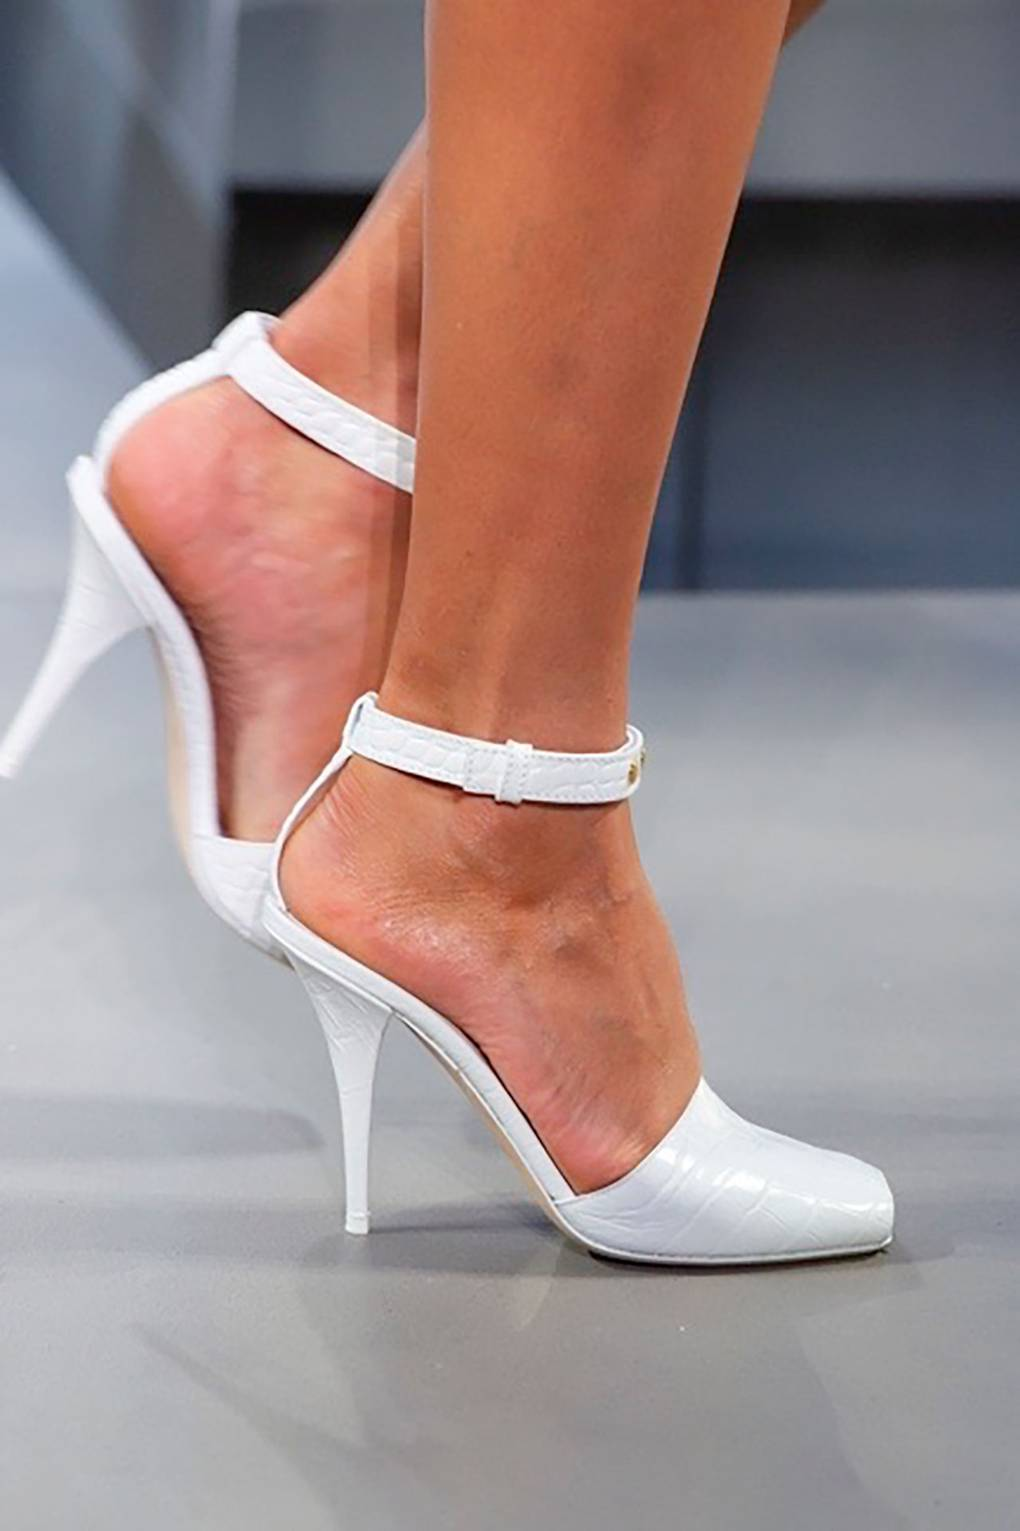 square-heel-shoe-2019-fashion-blogger